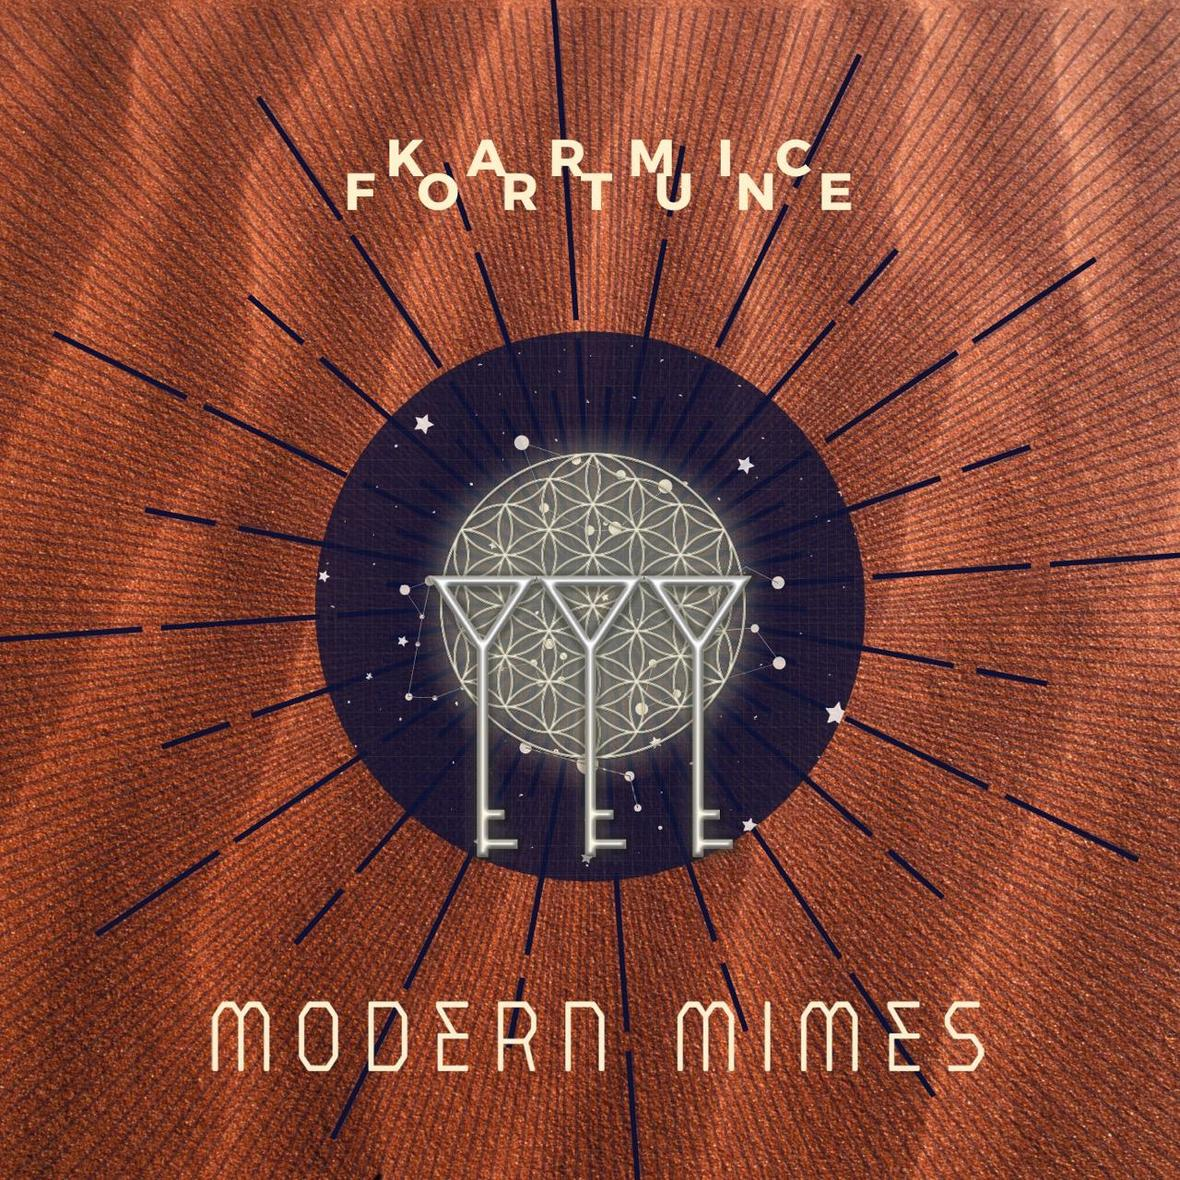 """Modern Mimes Song """"Karmic Fortune"""""""